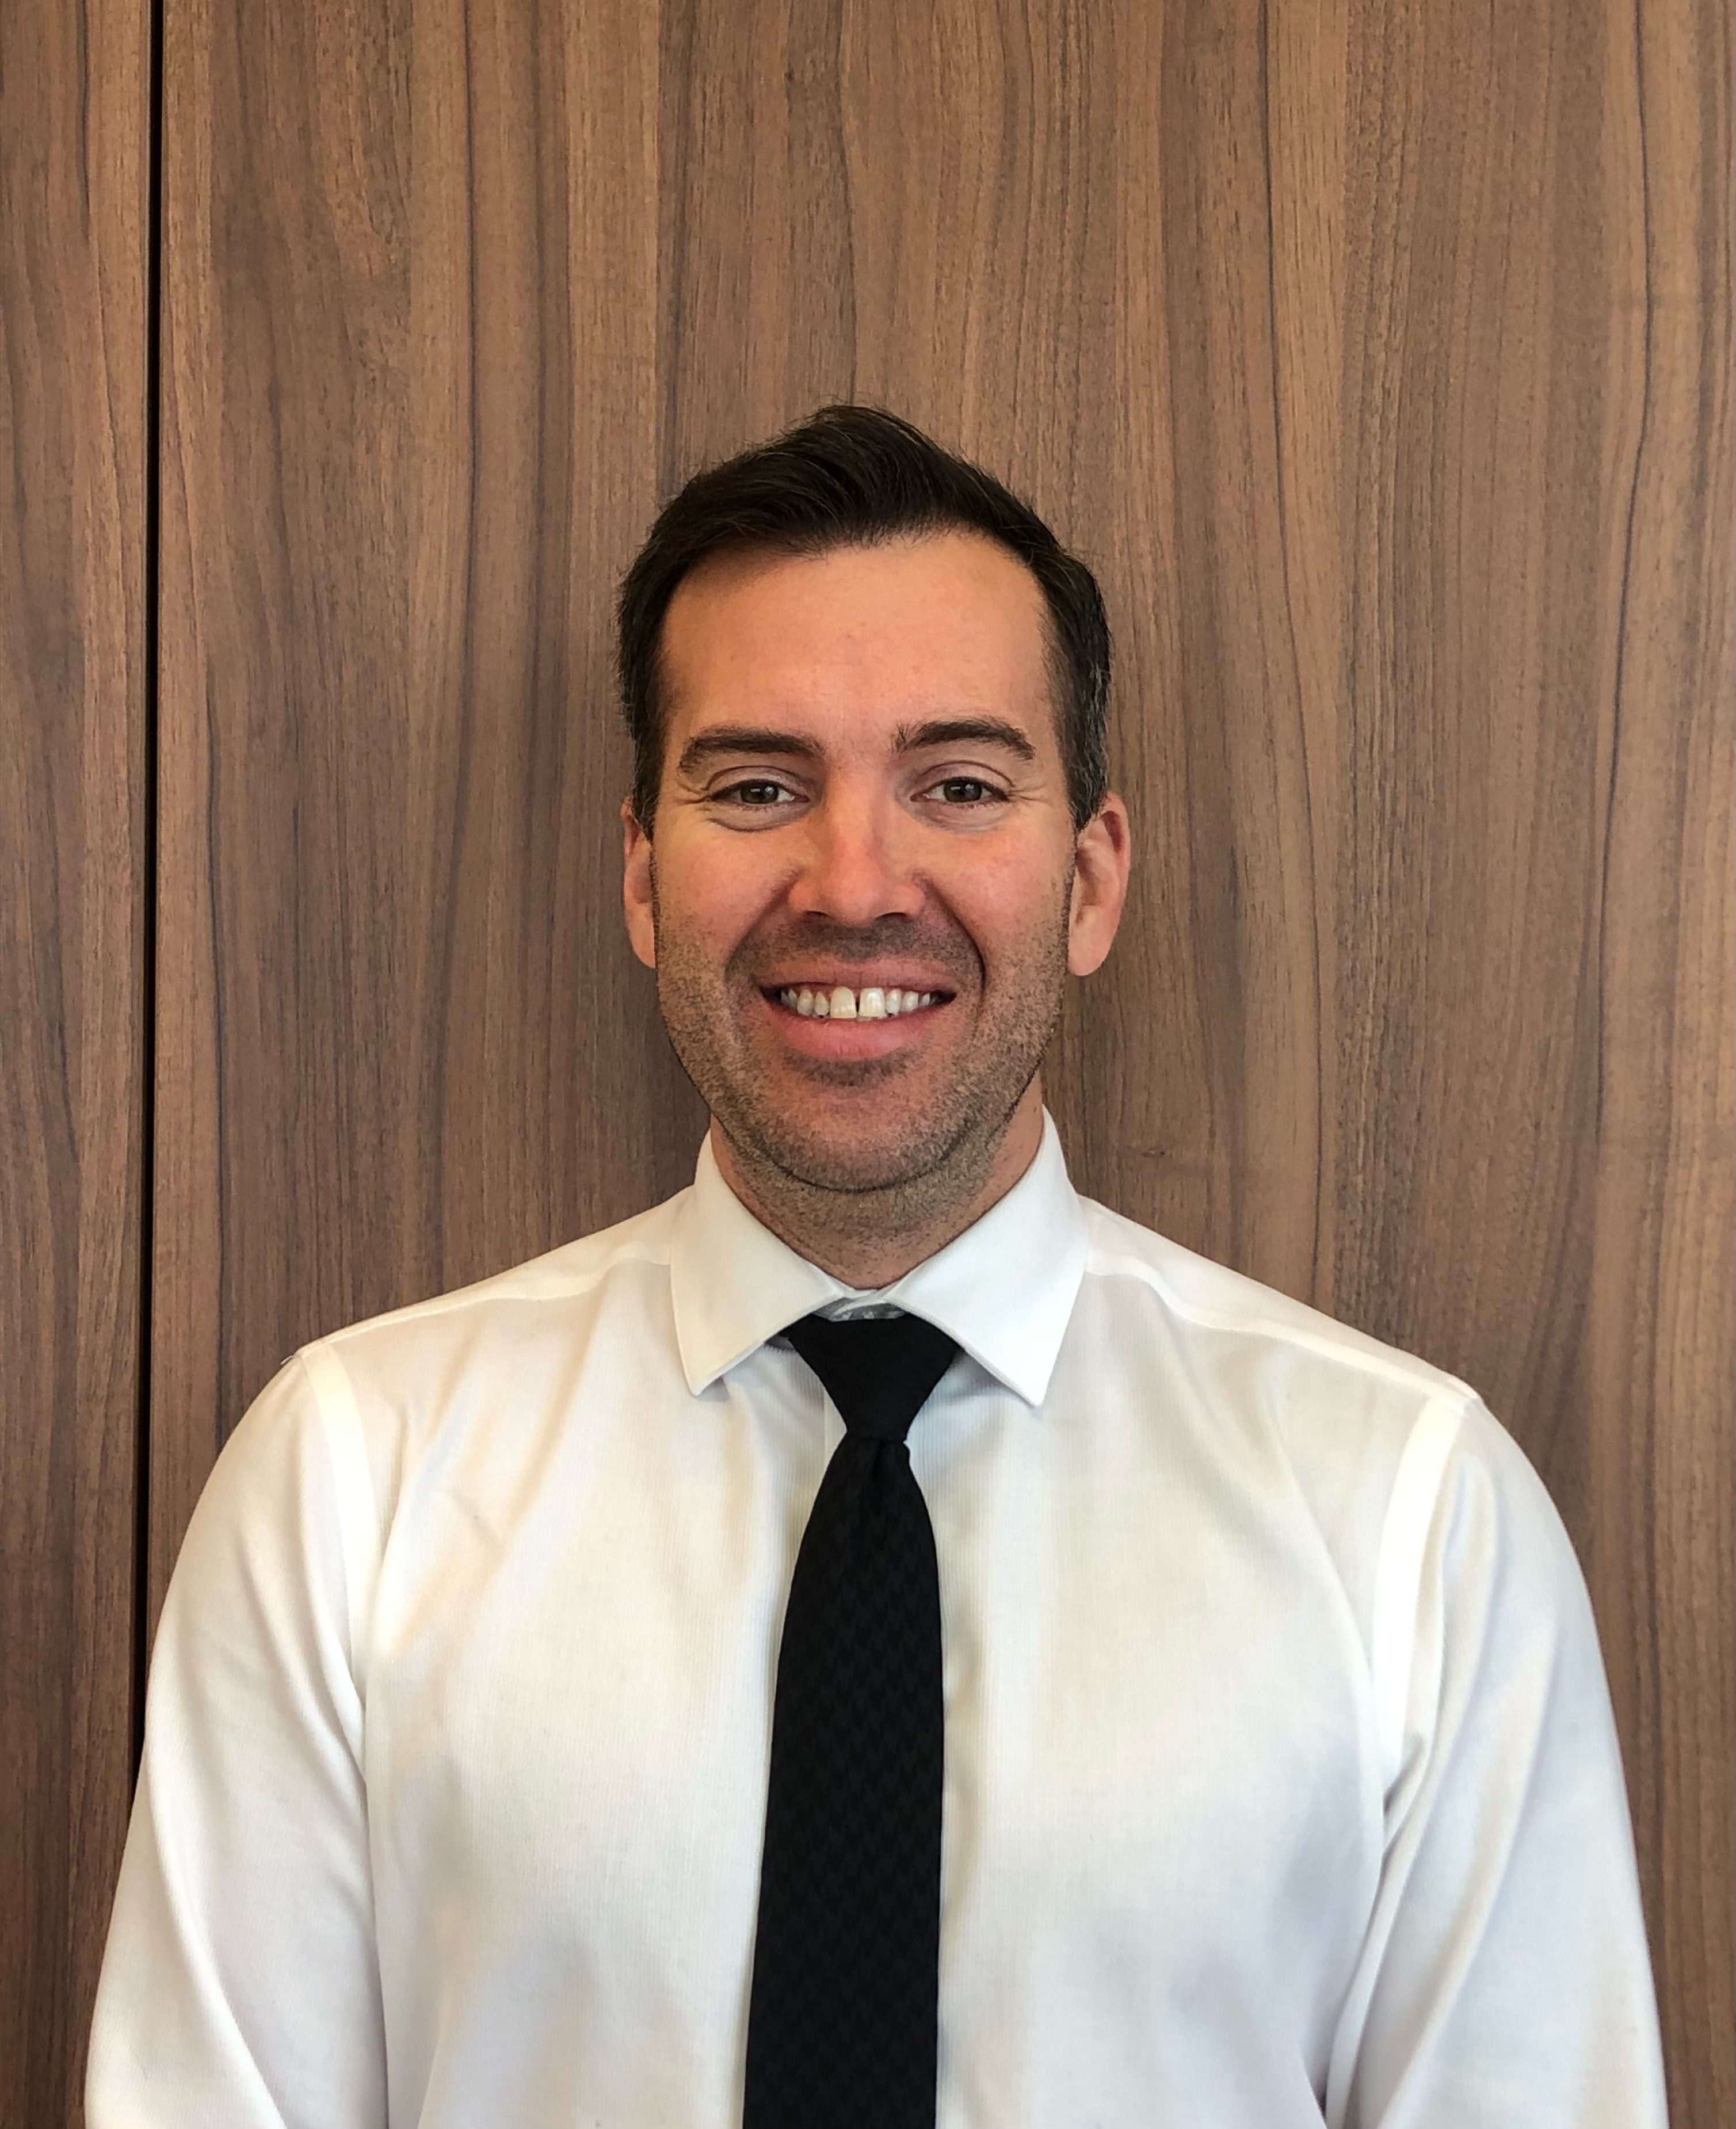 Ryan St. Hilaire - Service Manager